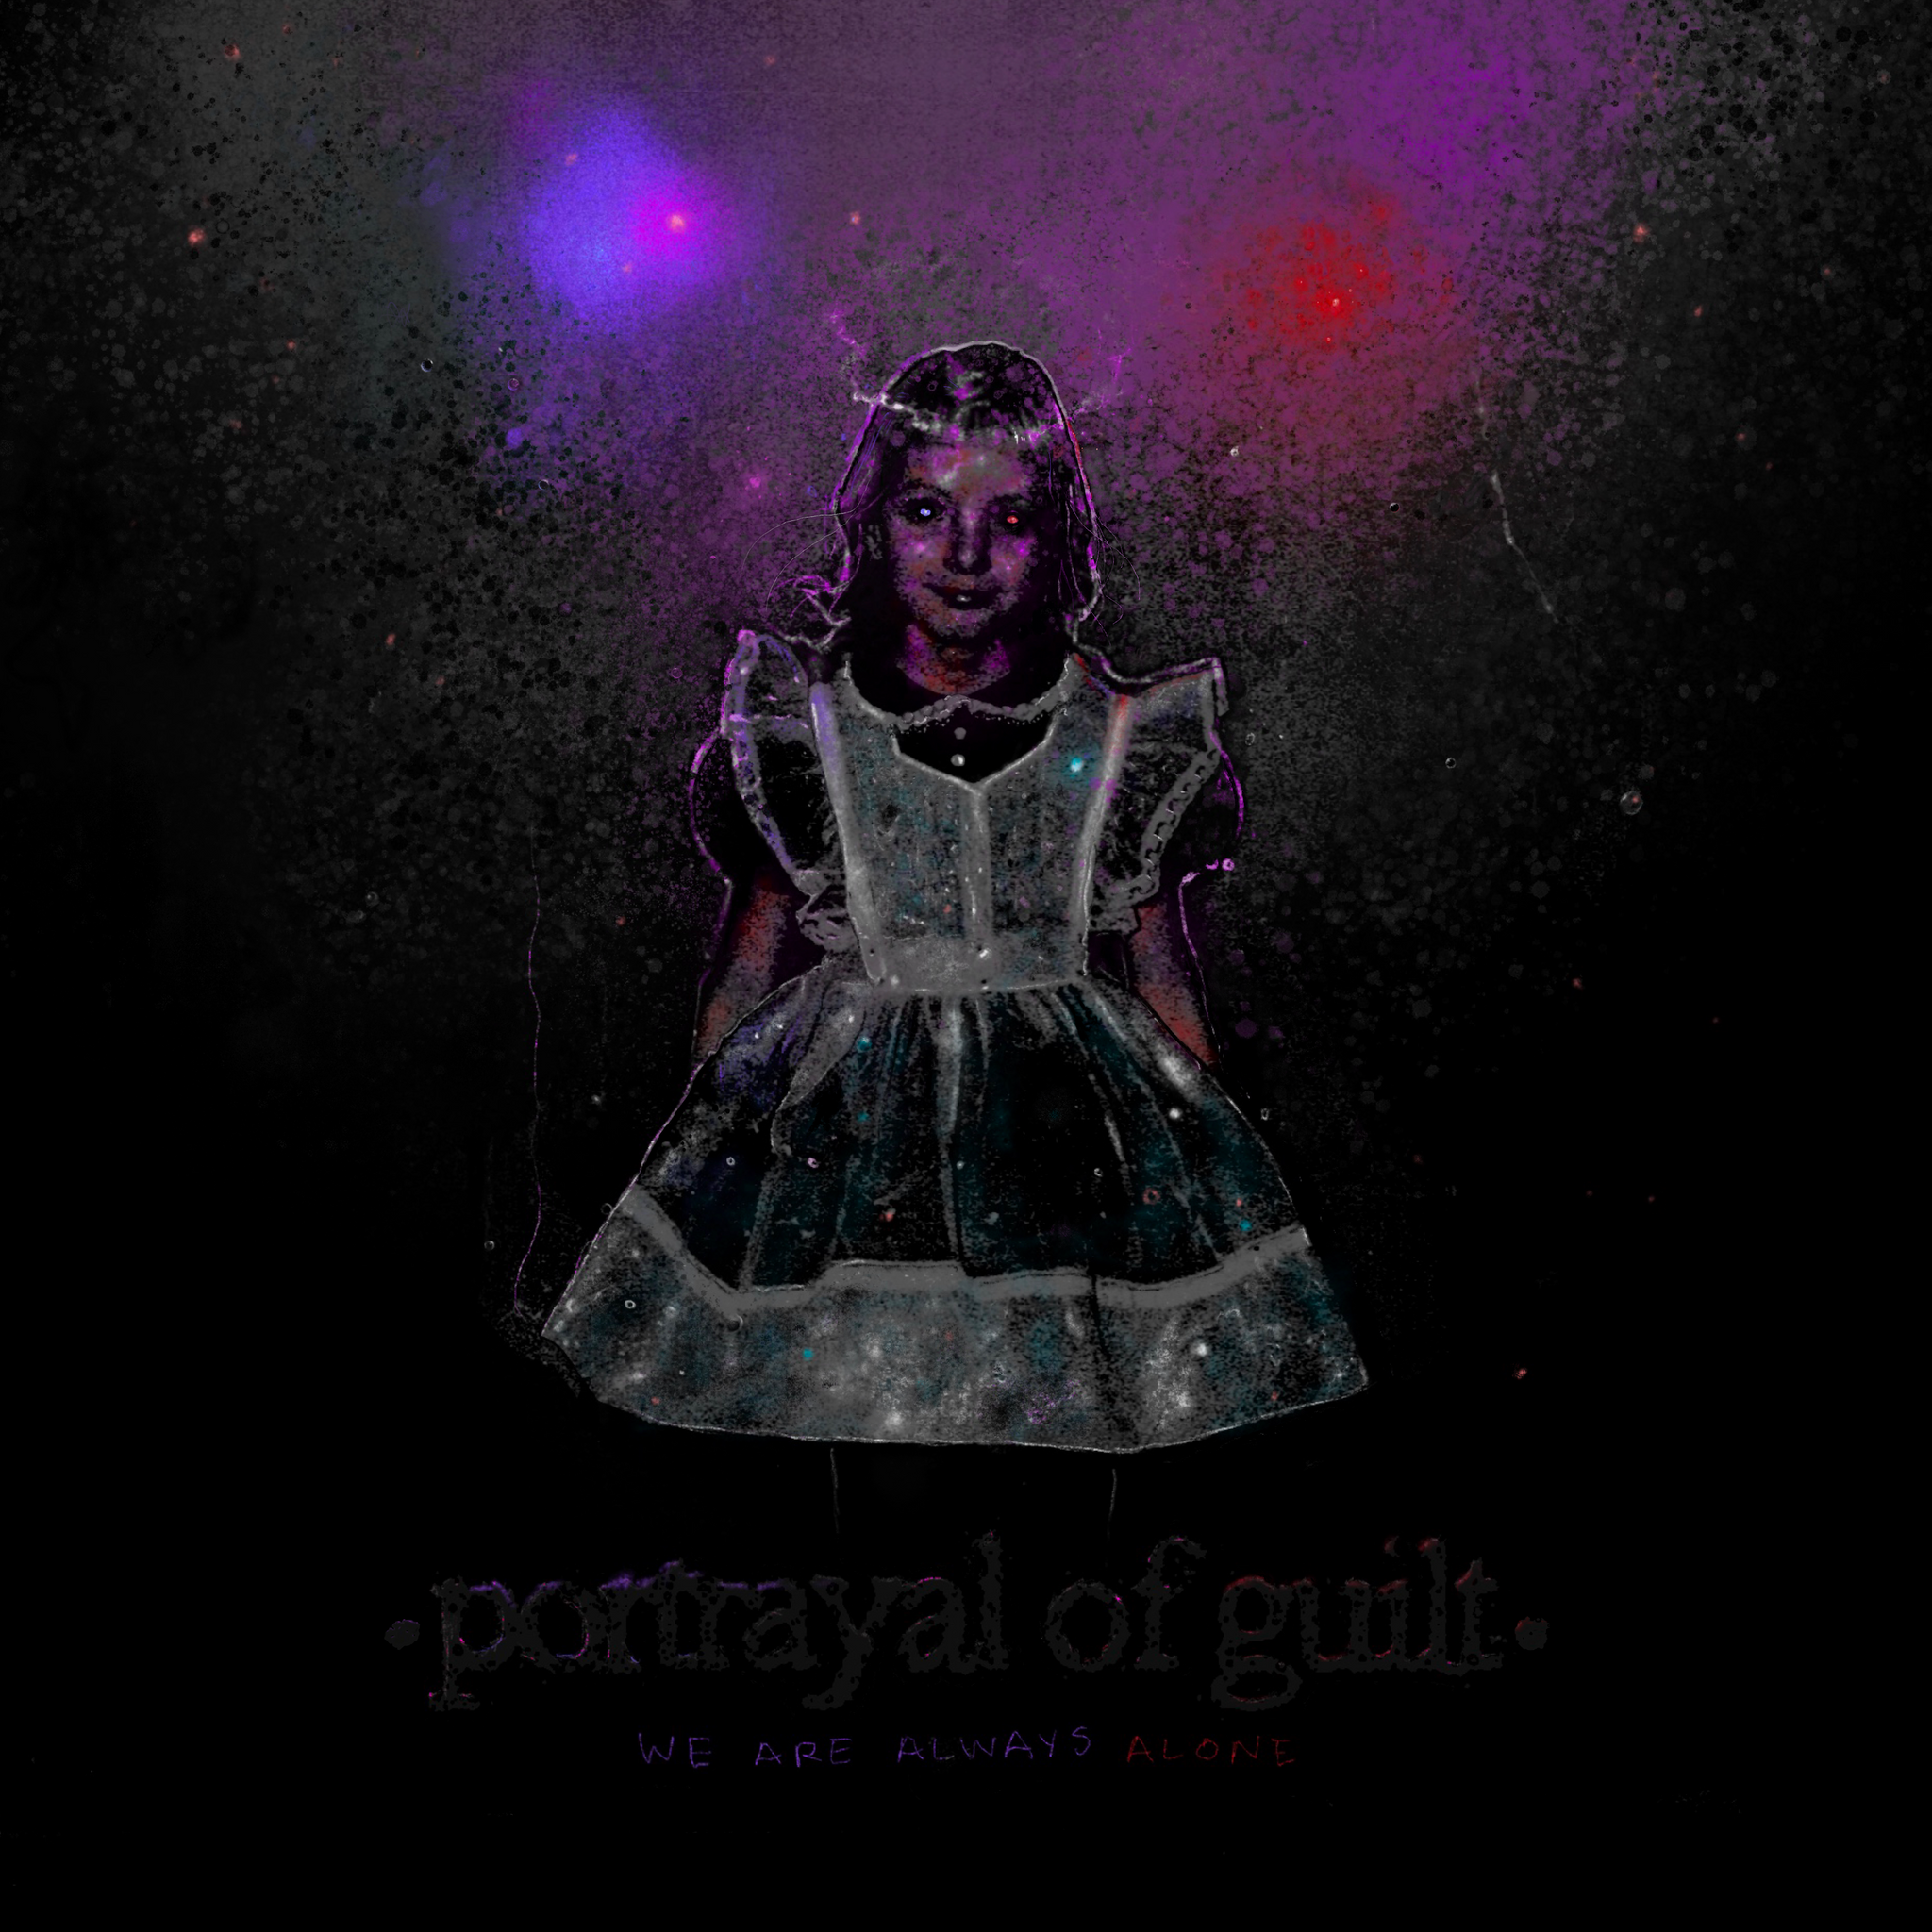 Portrayal of Guilt - We Are Always Alone